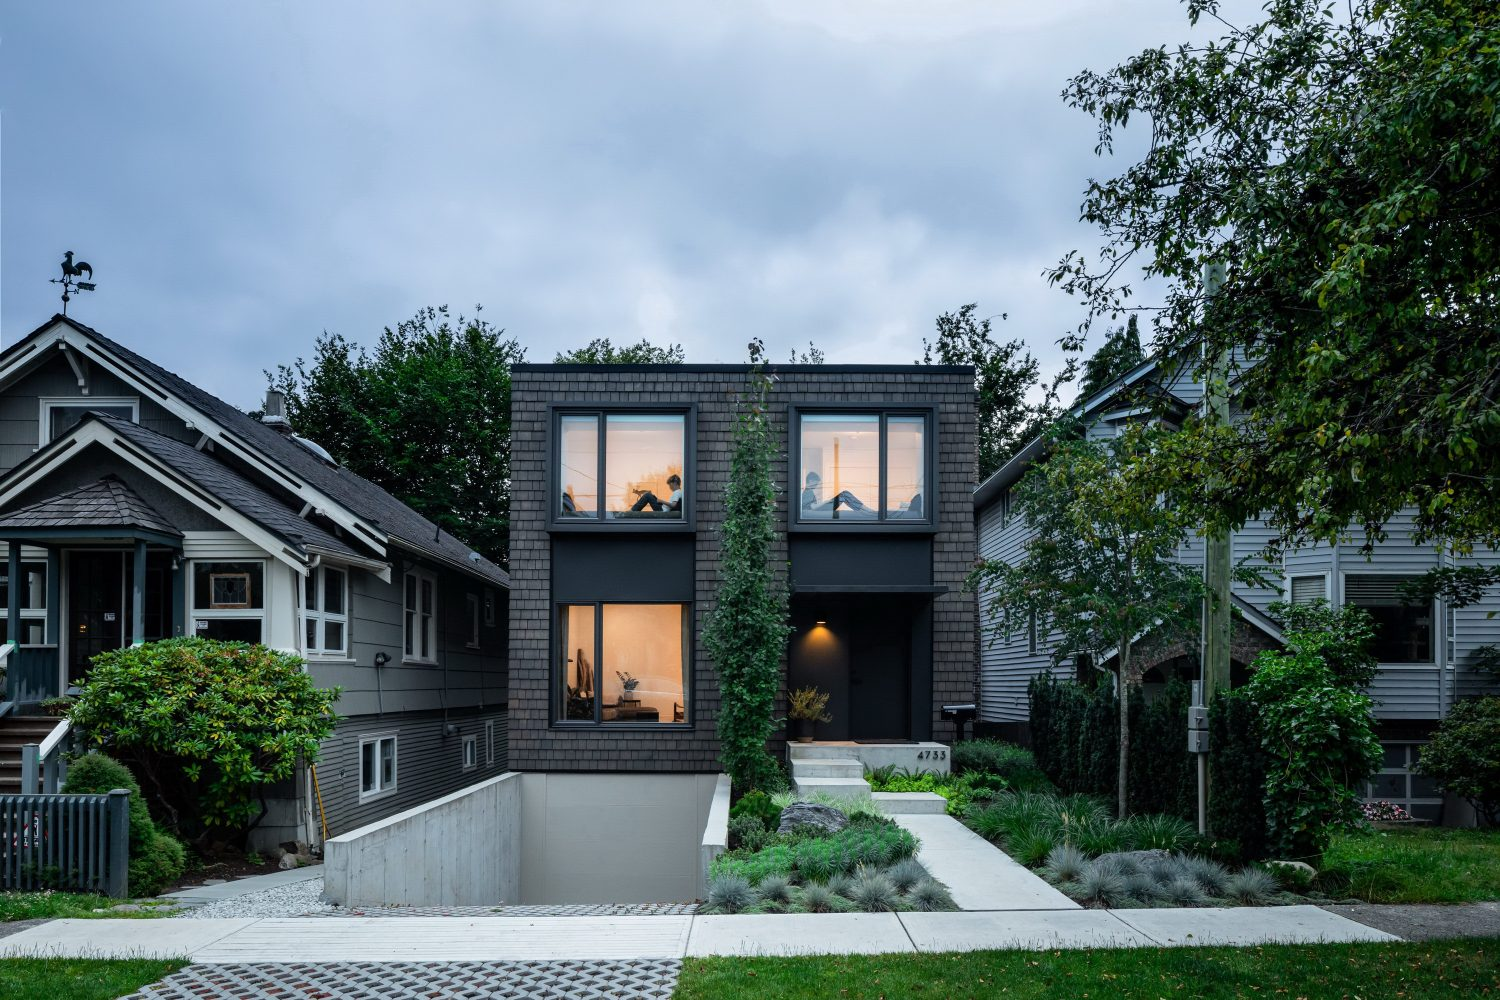 House With Two Bay Windows by D'Arcy Jones Architecture